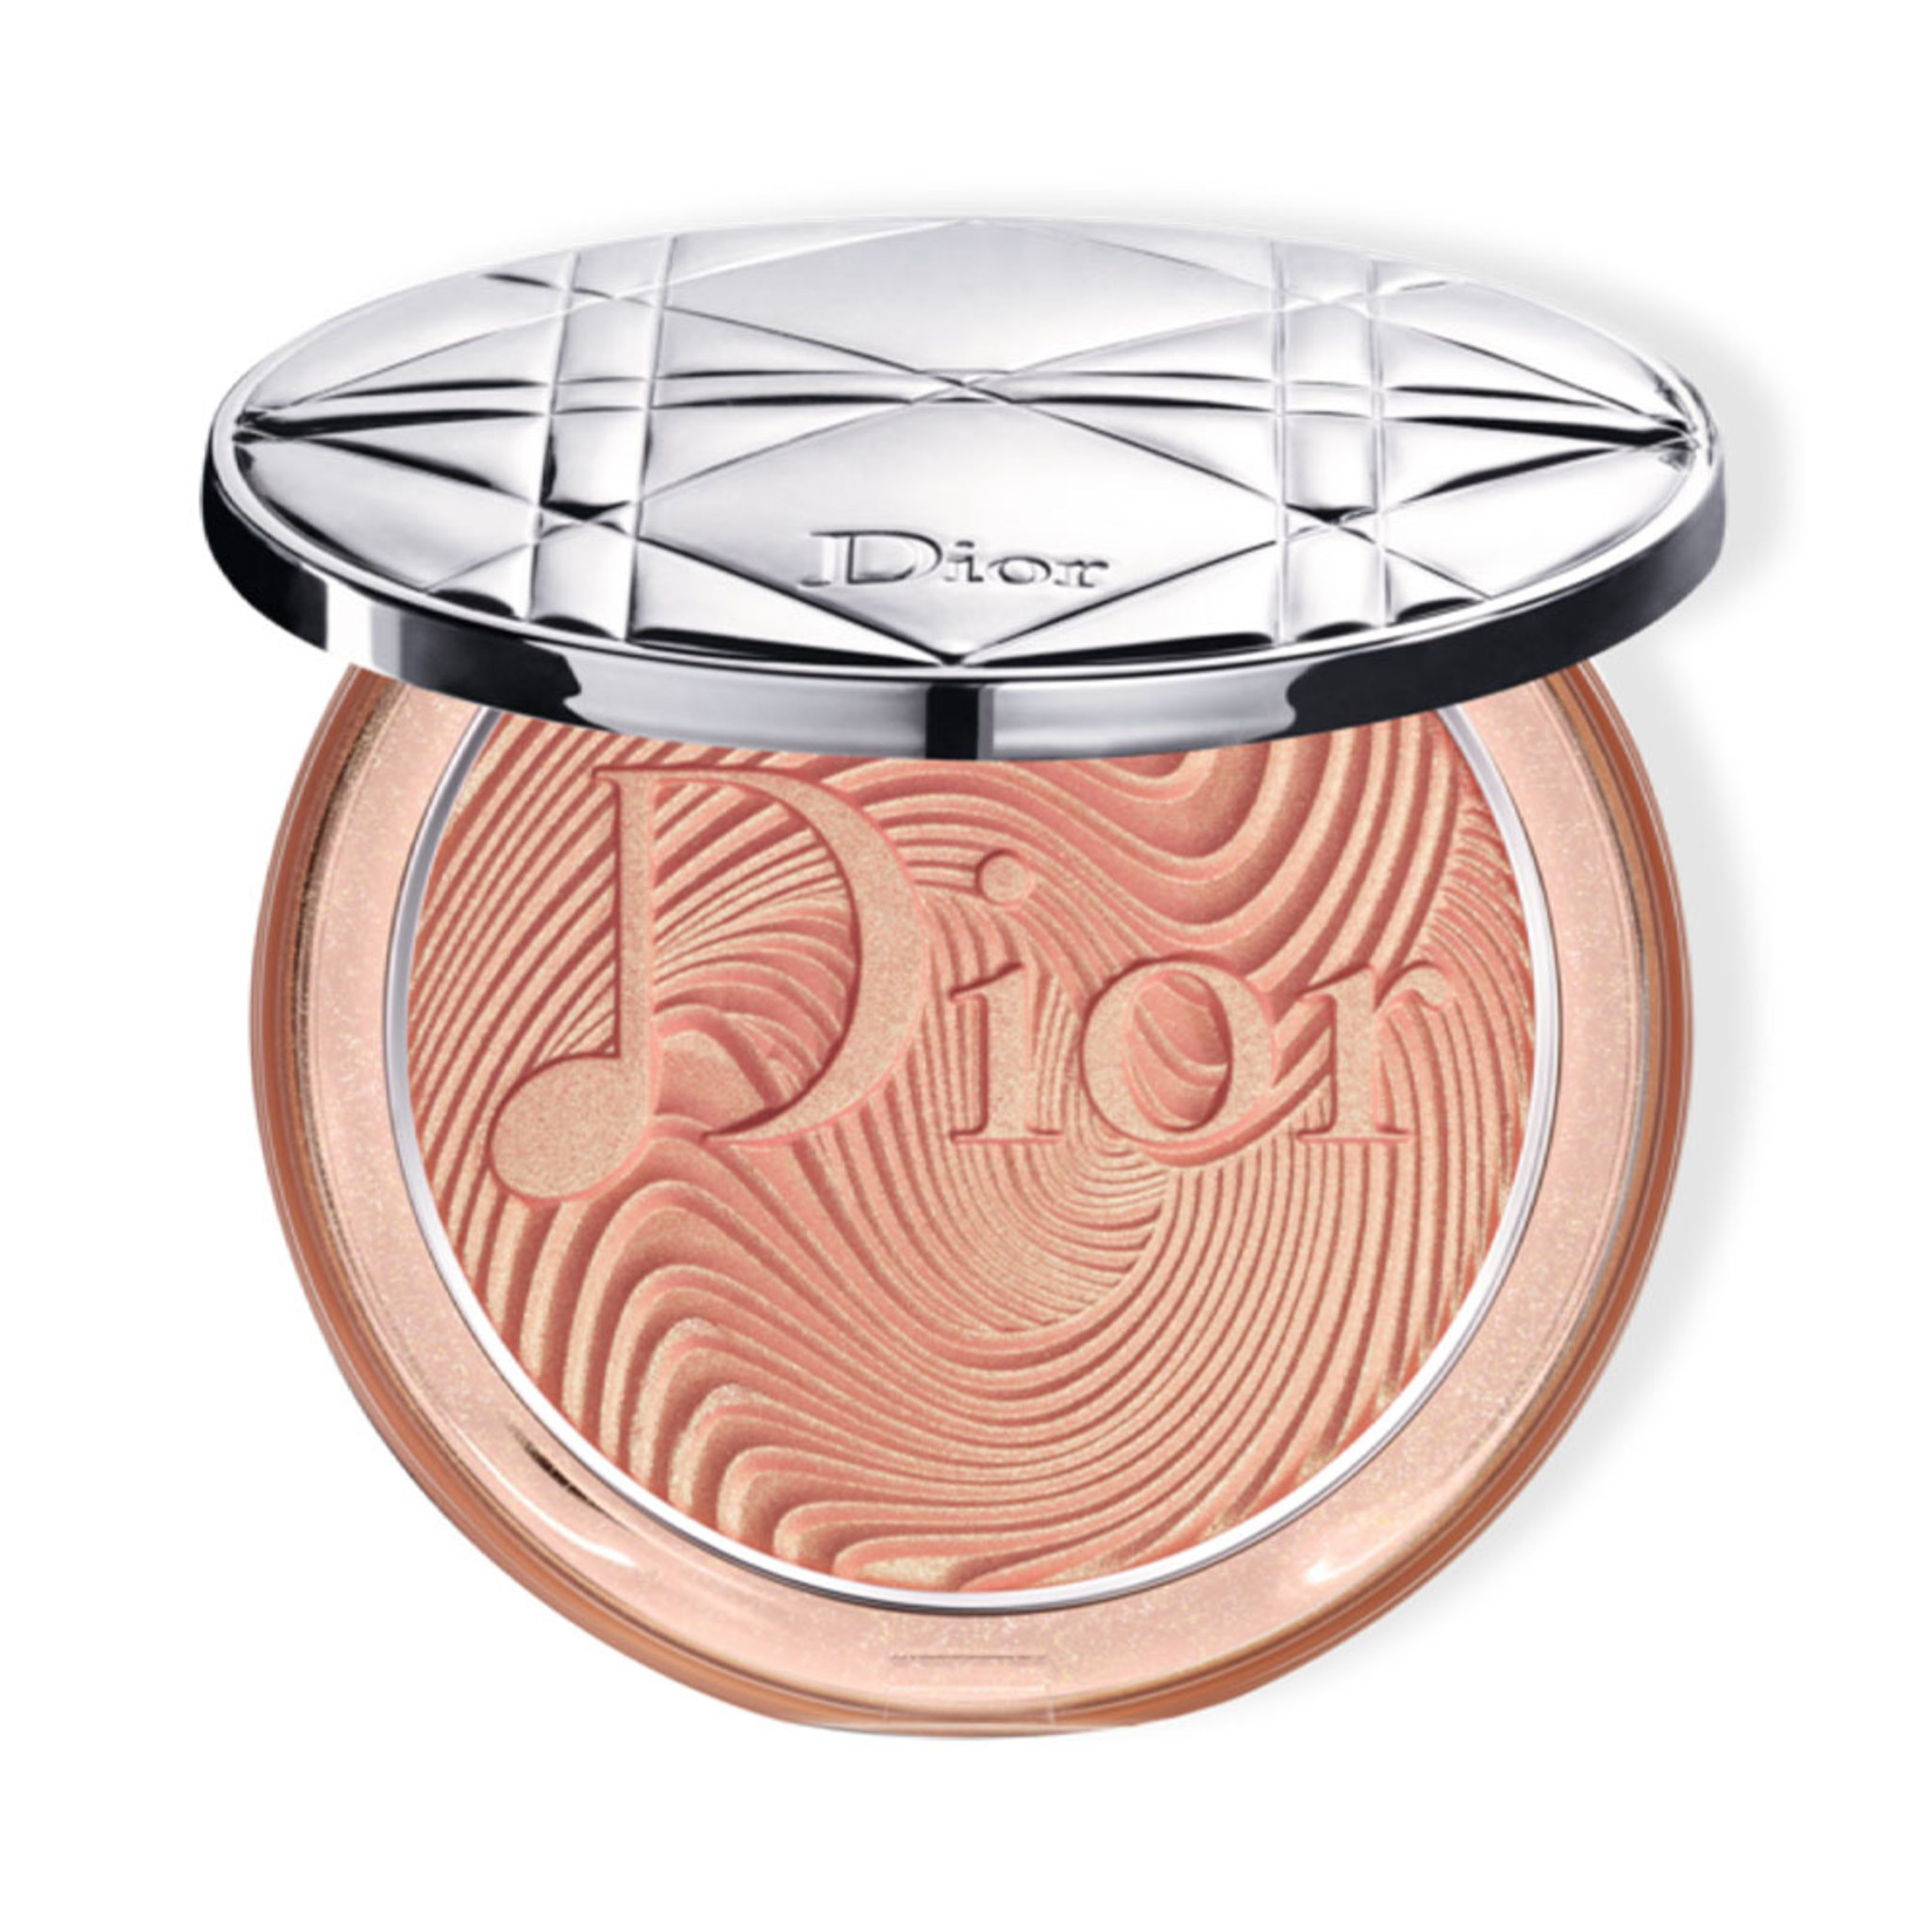 Diorskin Nude Luminizer Glow Vibes - Limited Edition